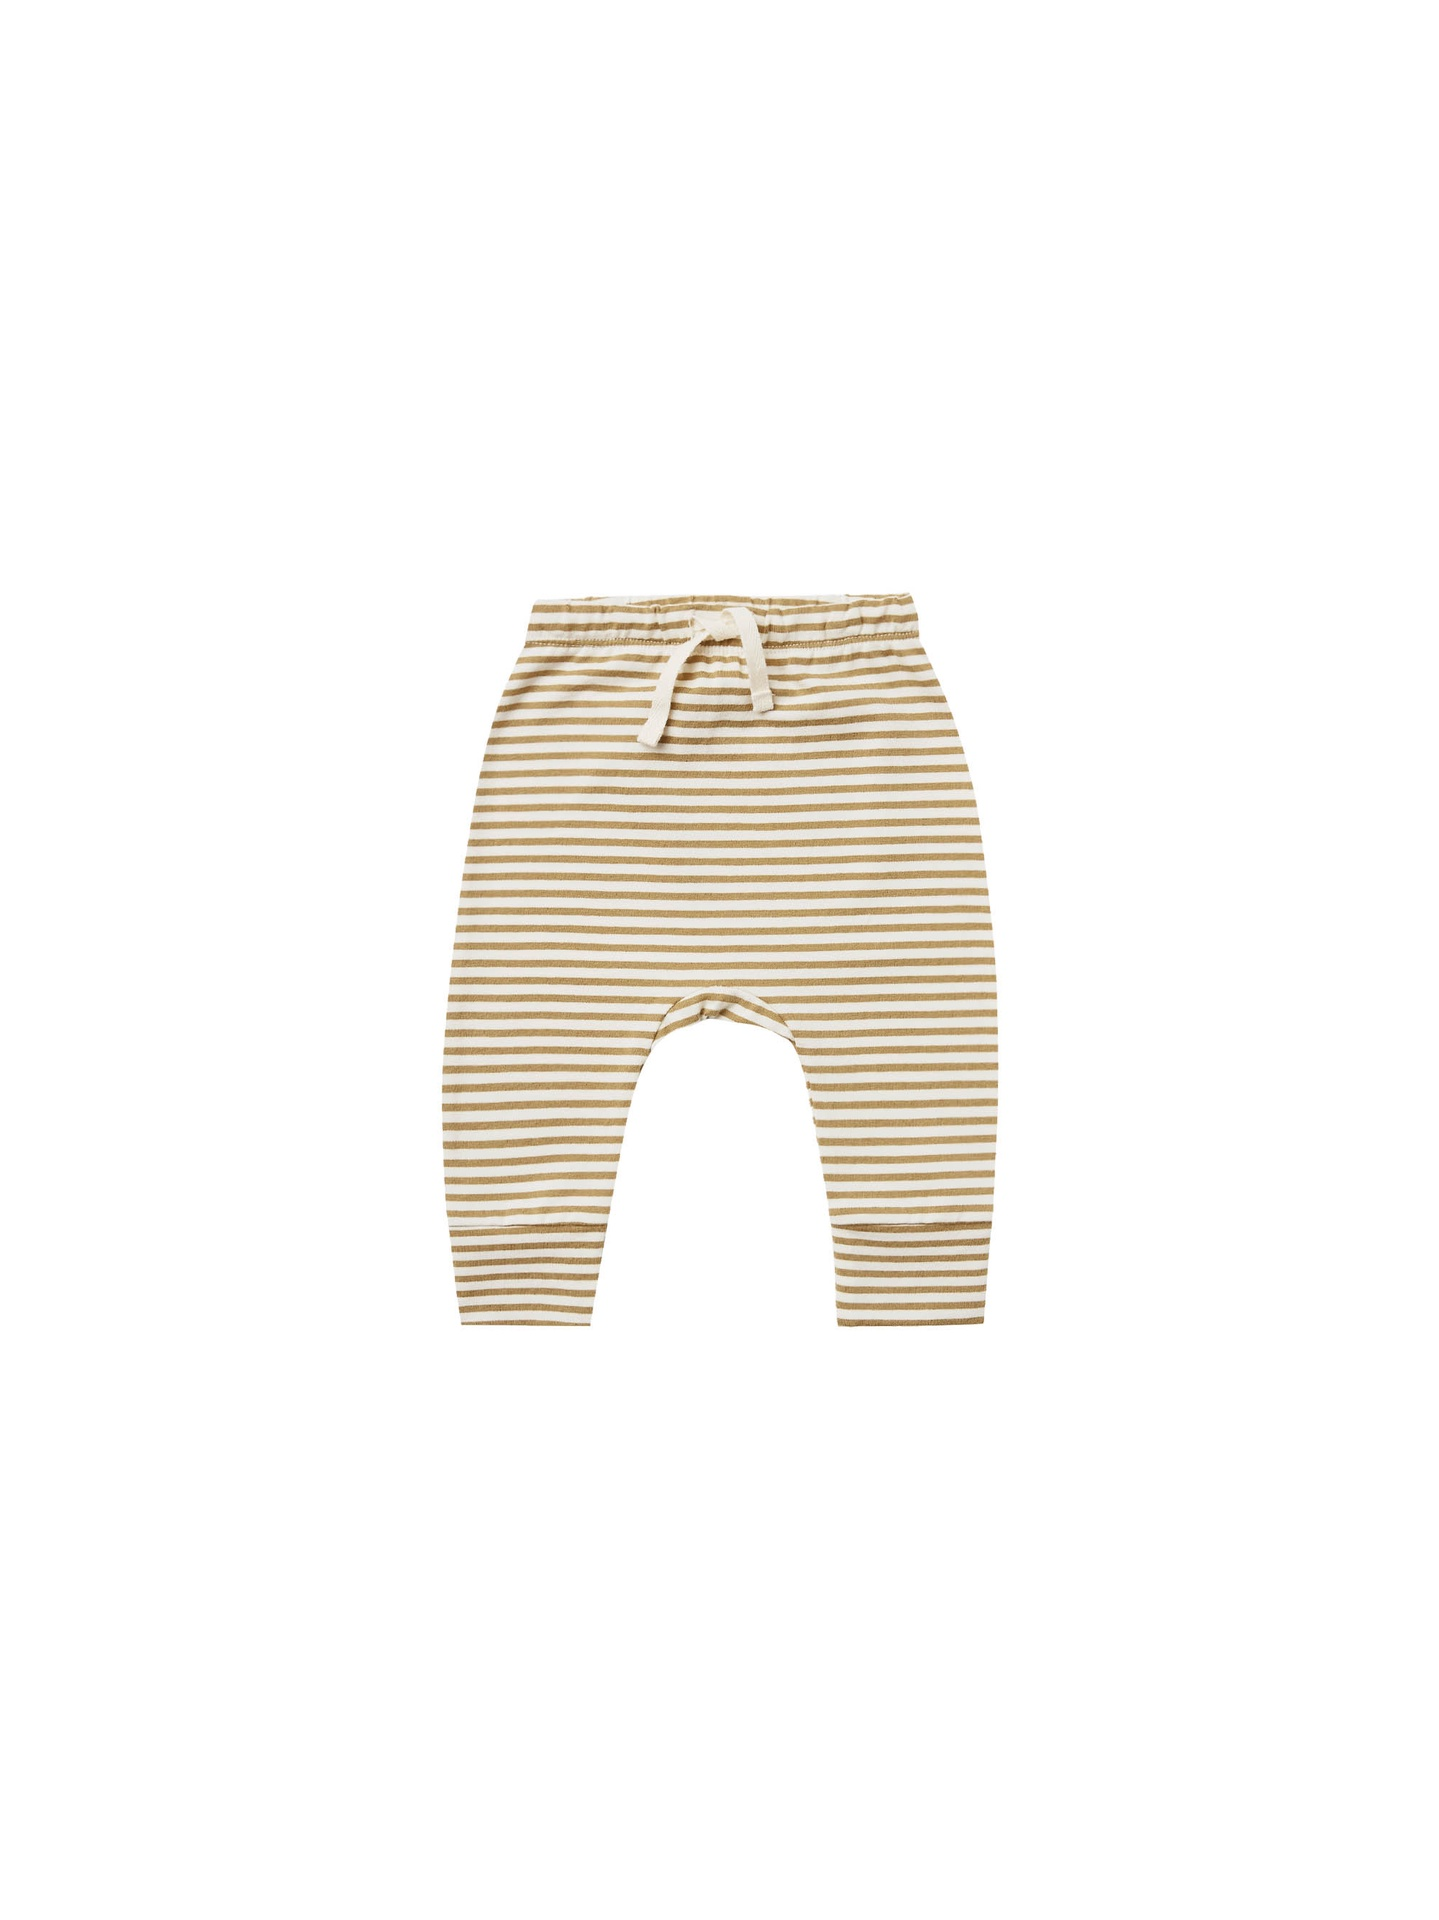 Quincy Mae Baby Drawstring Pant